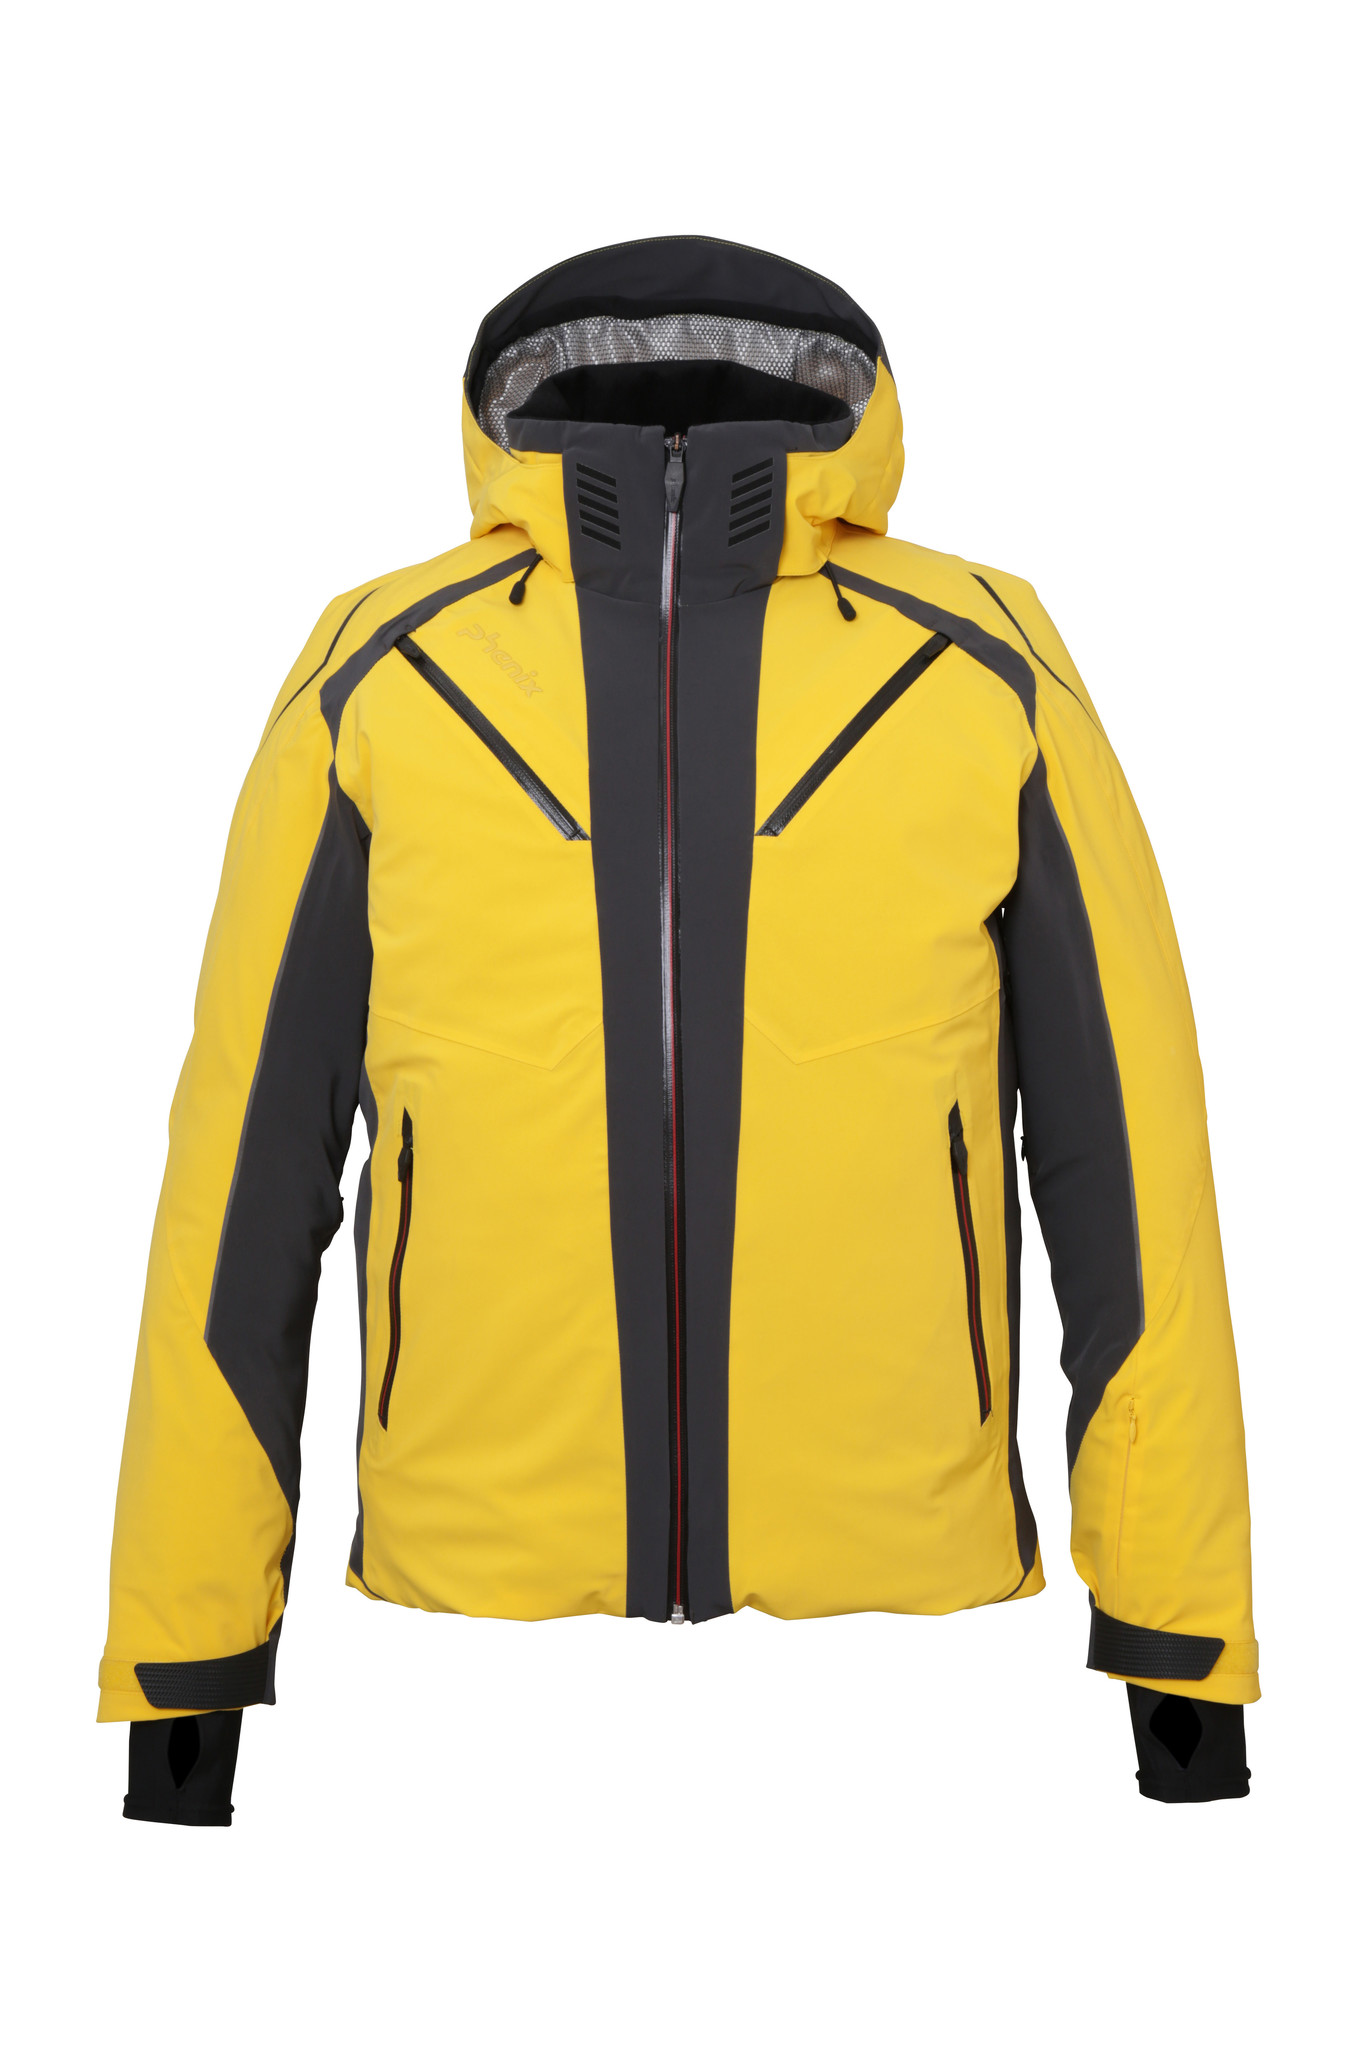 PHENIX Taurus Jacket